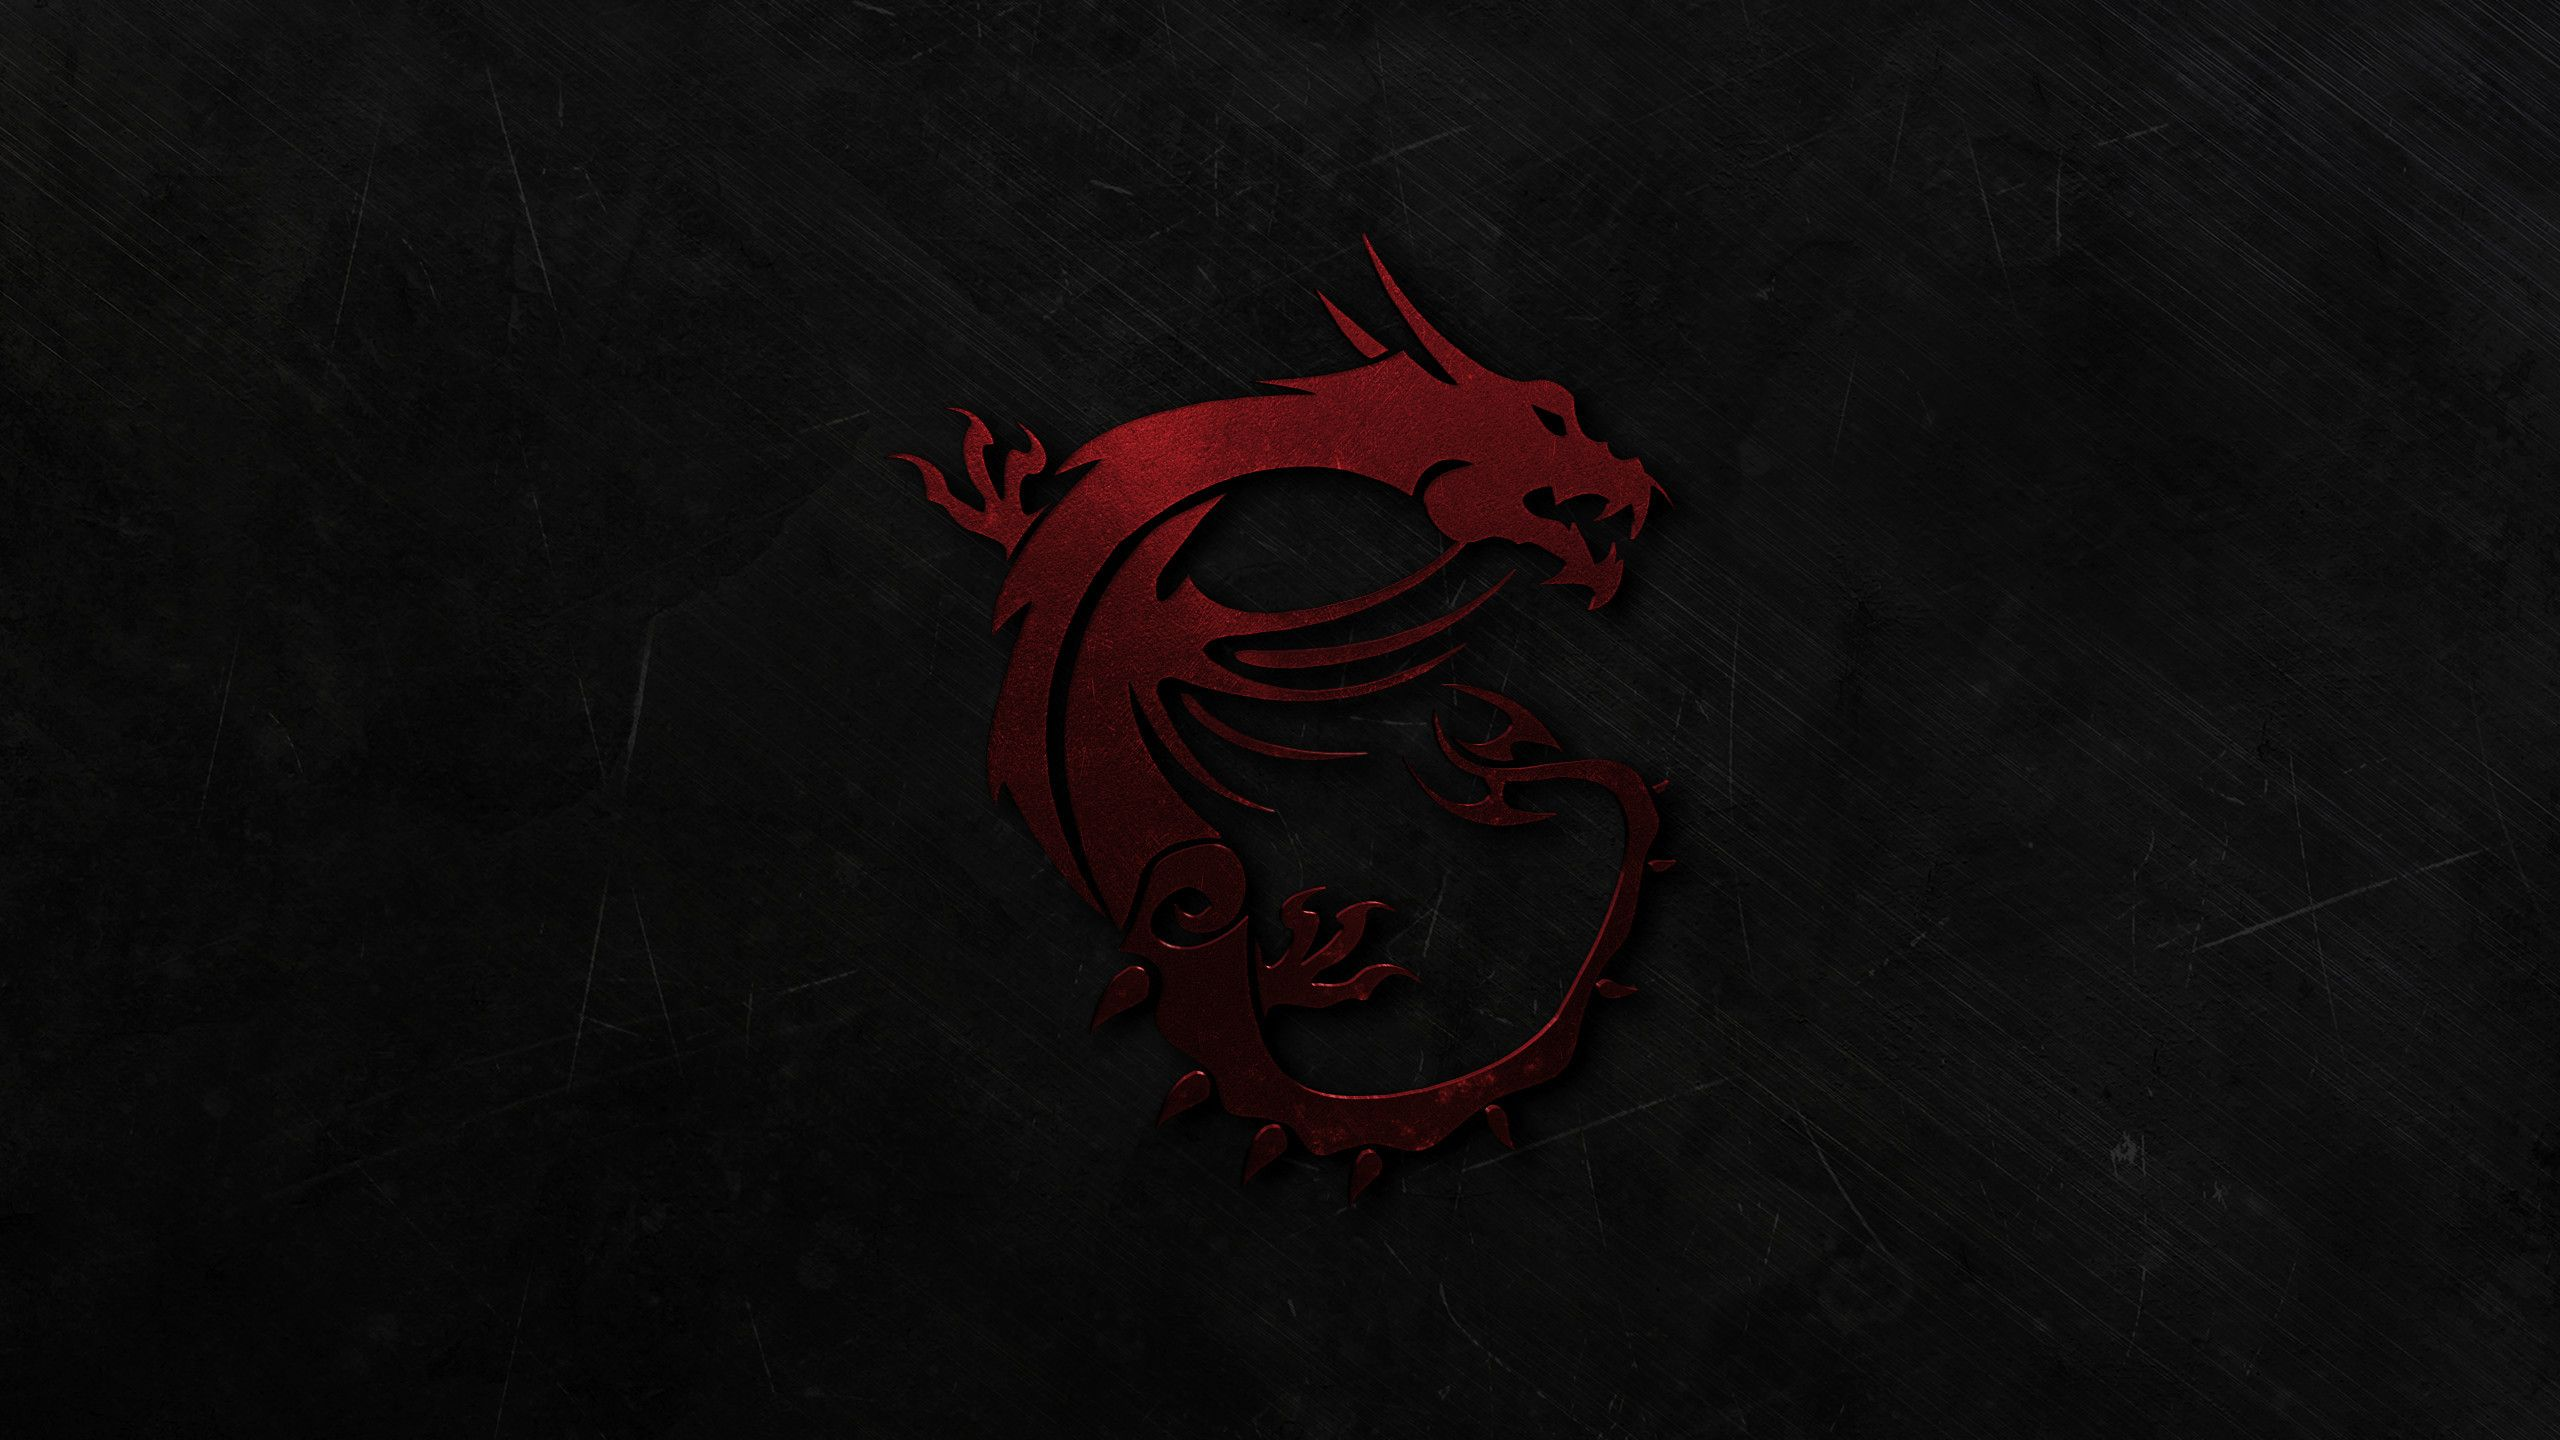 Res 2560x1440, MSI Gaming Dragon Wallpaper V2 (Red) by